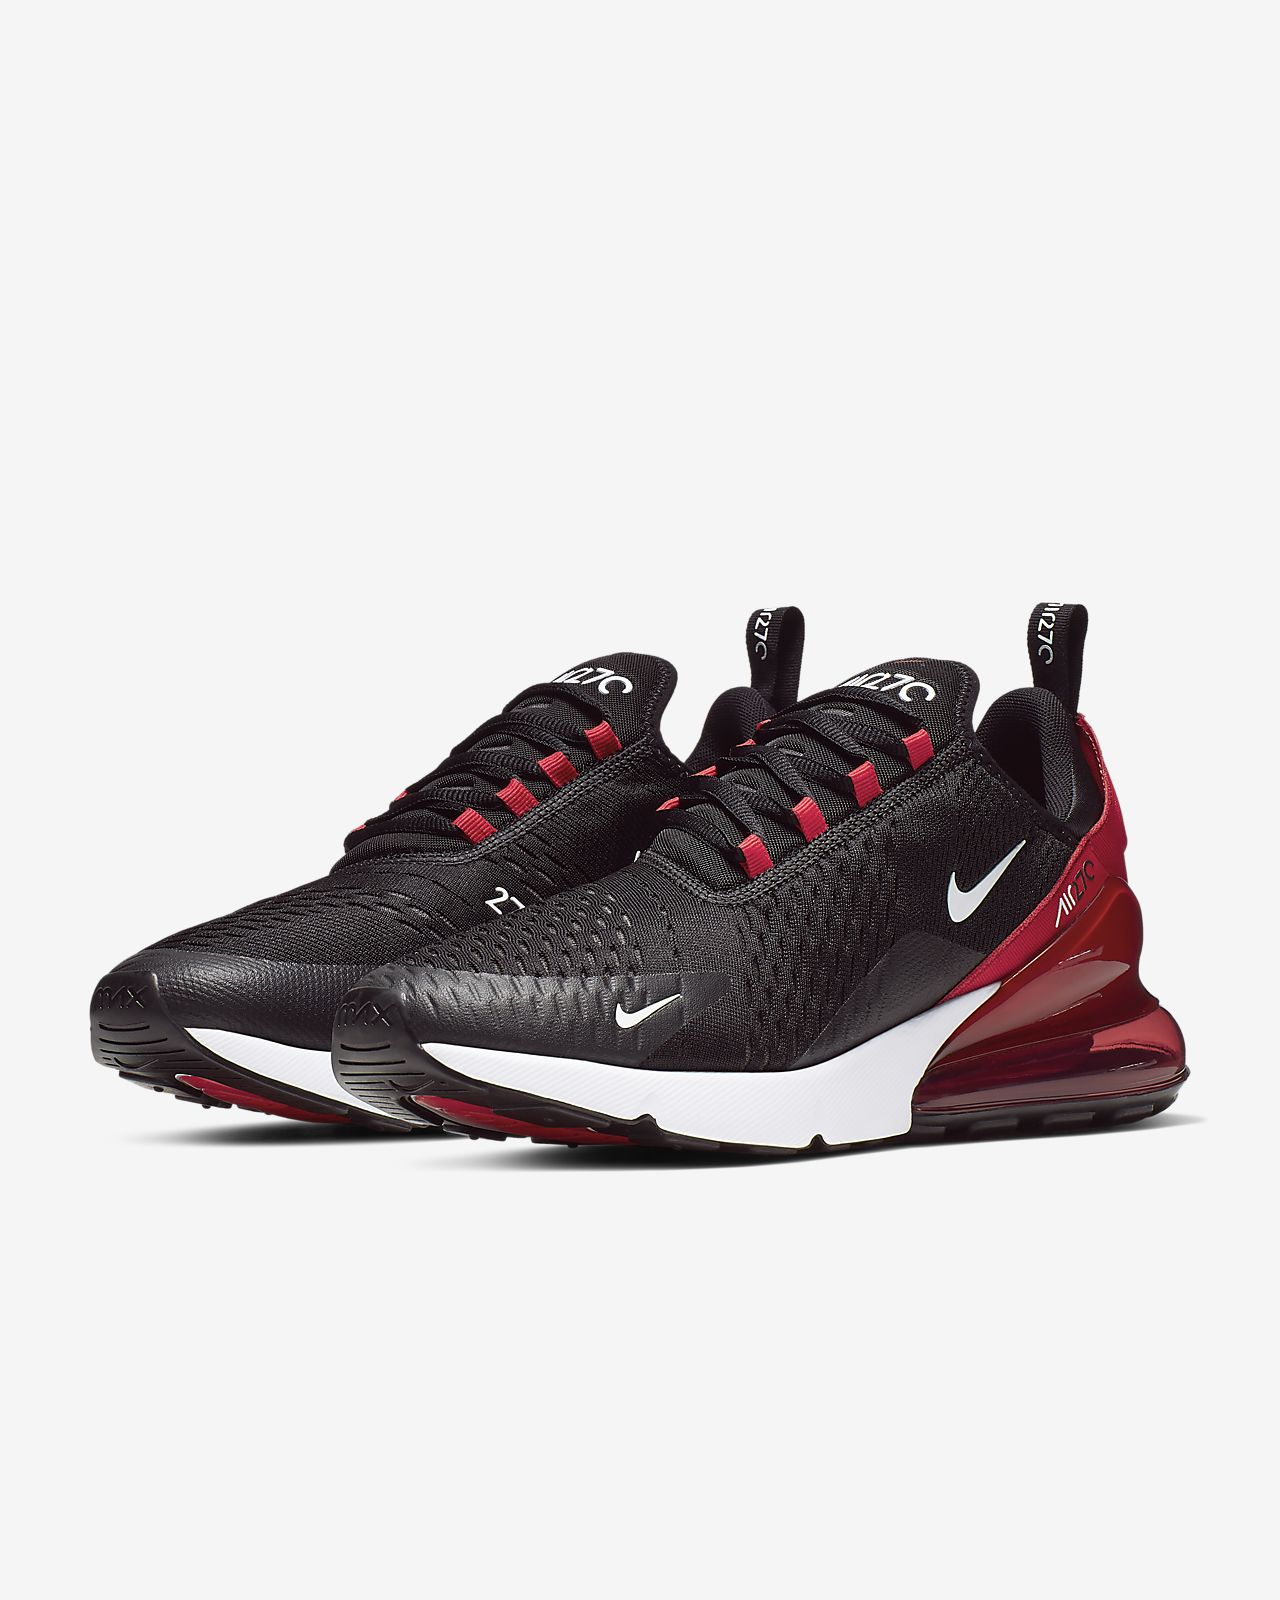 meet 1bf4b b76d9 Men s Shoe. Nike Air Max 270